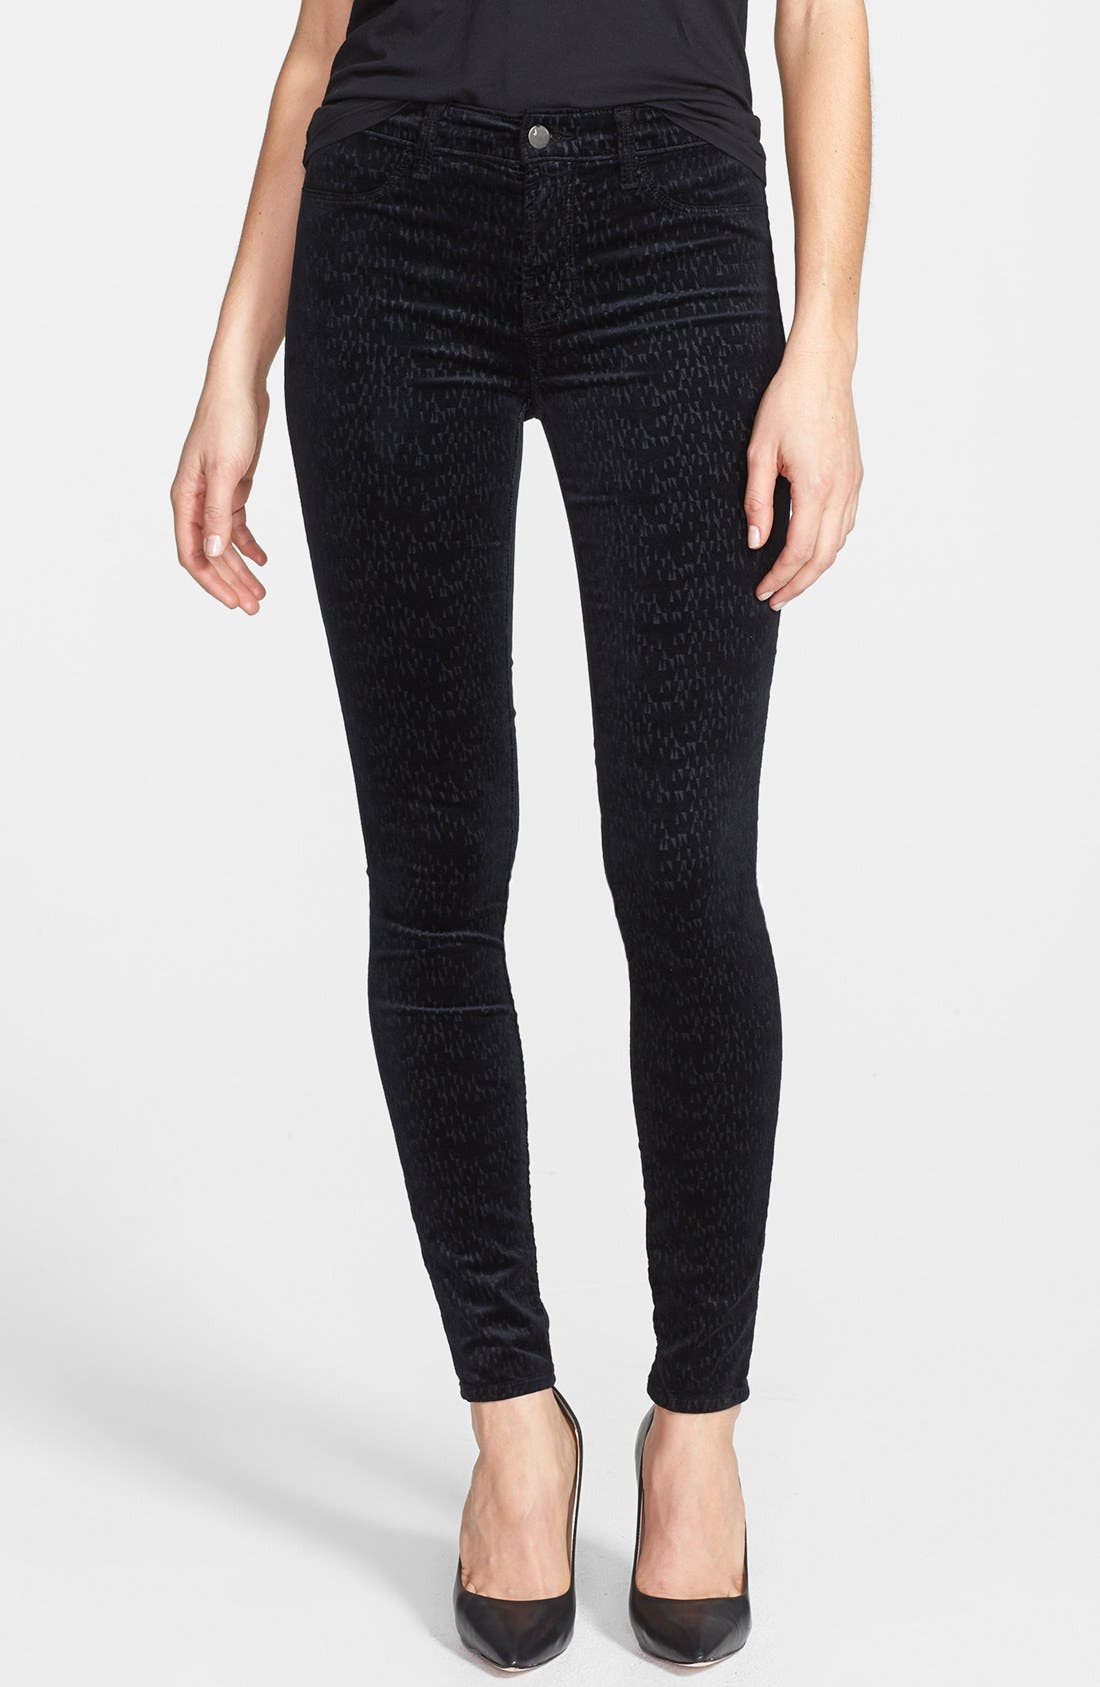 Alternate Image 1 Selected - J Brand '815' Patterned Velvet Skinny Jeans